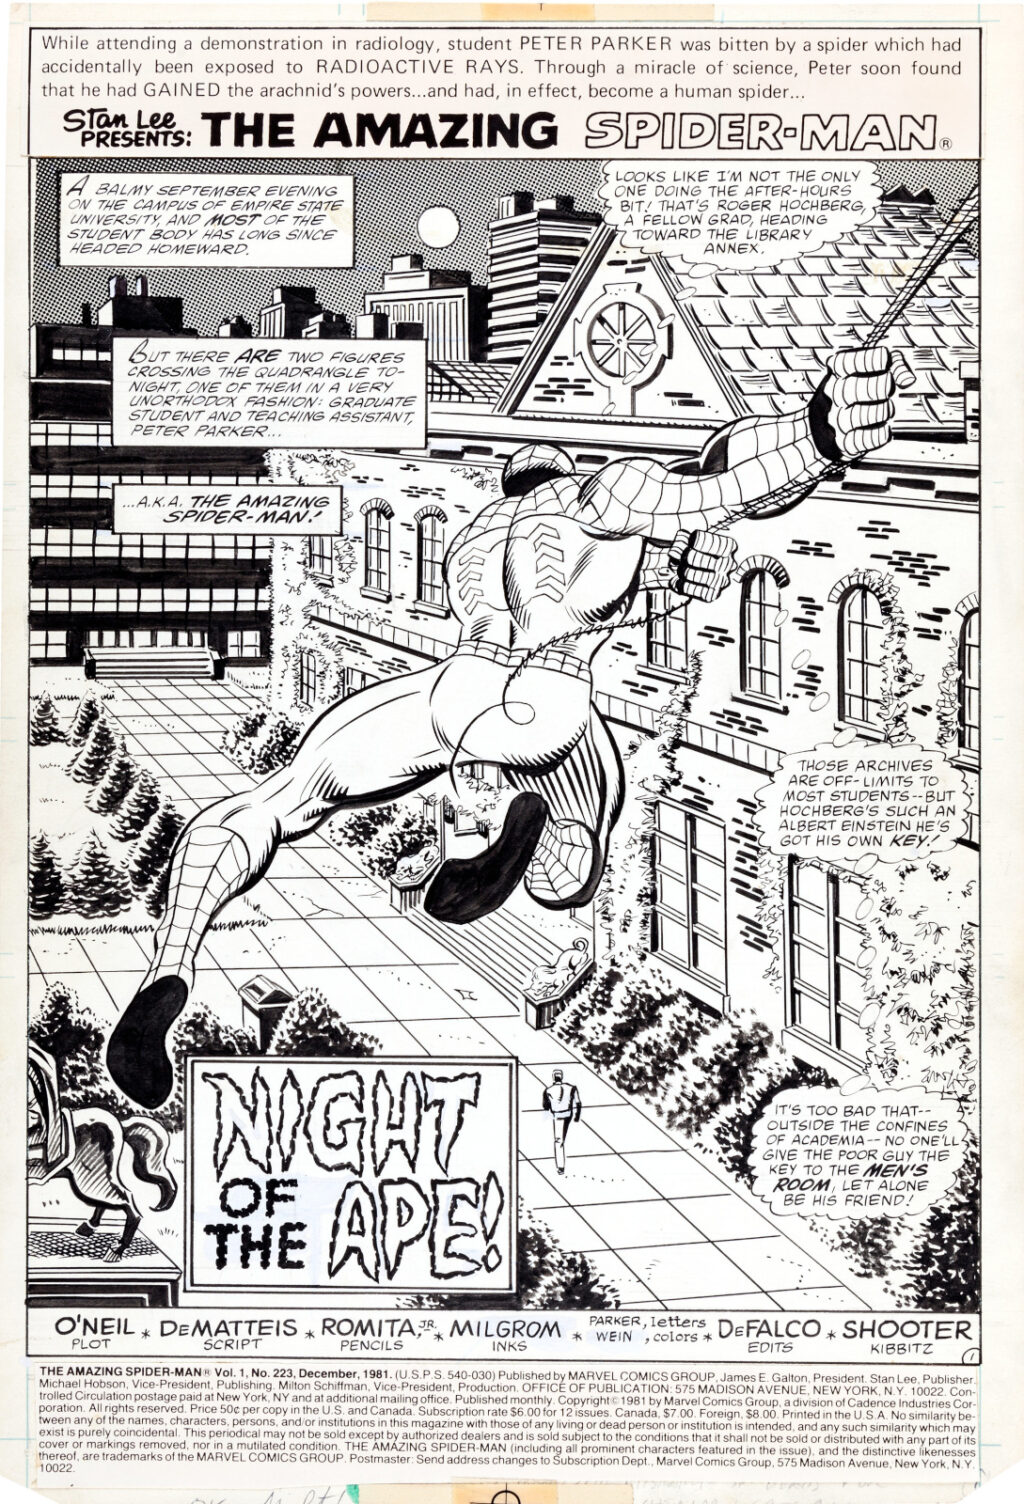 Amazing Spider Man issue 223 page 1 by John Romita Jr. and Al Milgrom